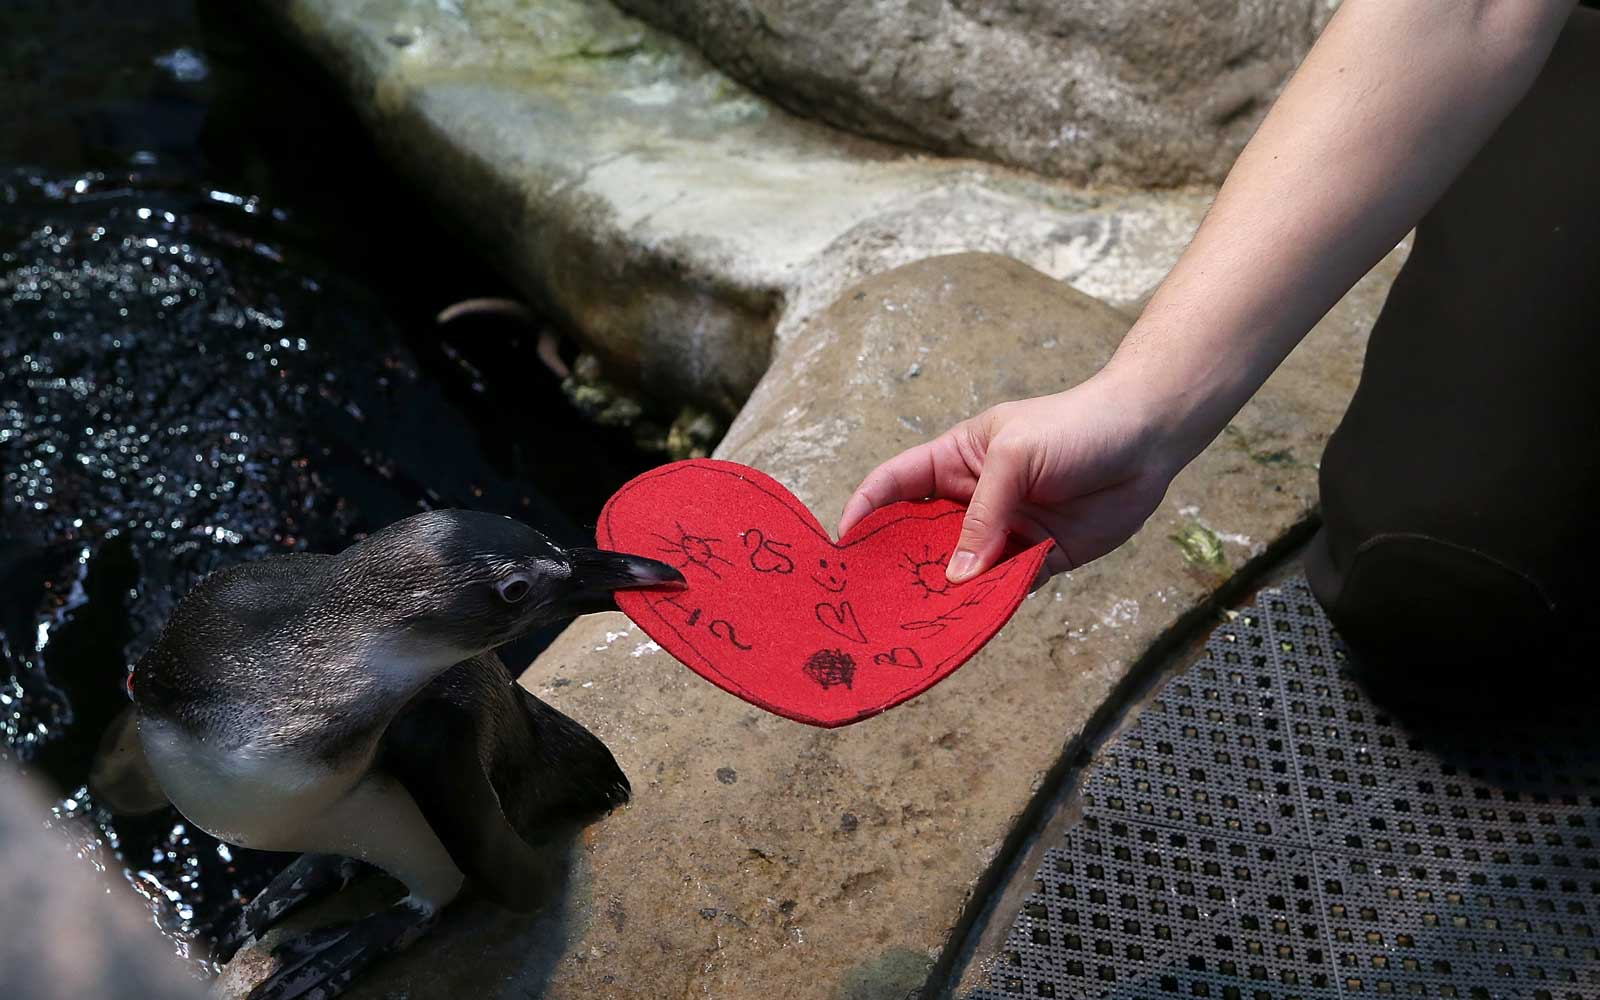 California Academy of Sciences senior biologist Jarrod Willis gives an African Penguin a Valentine's Day card at the California Academy of Sciences